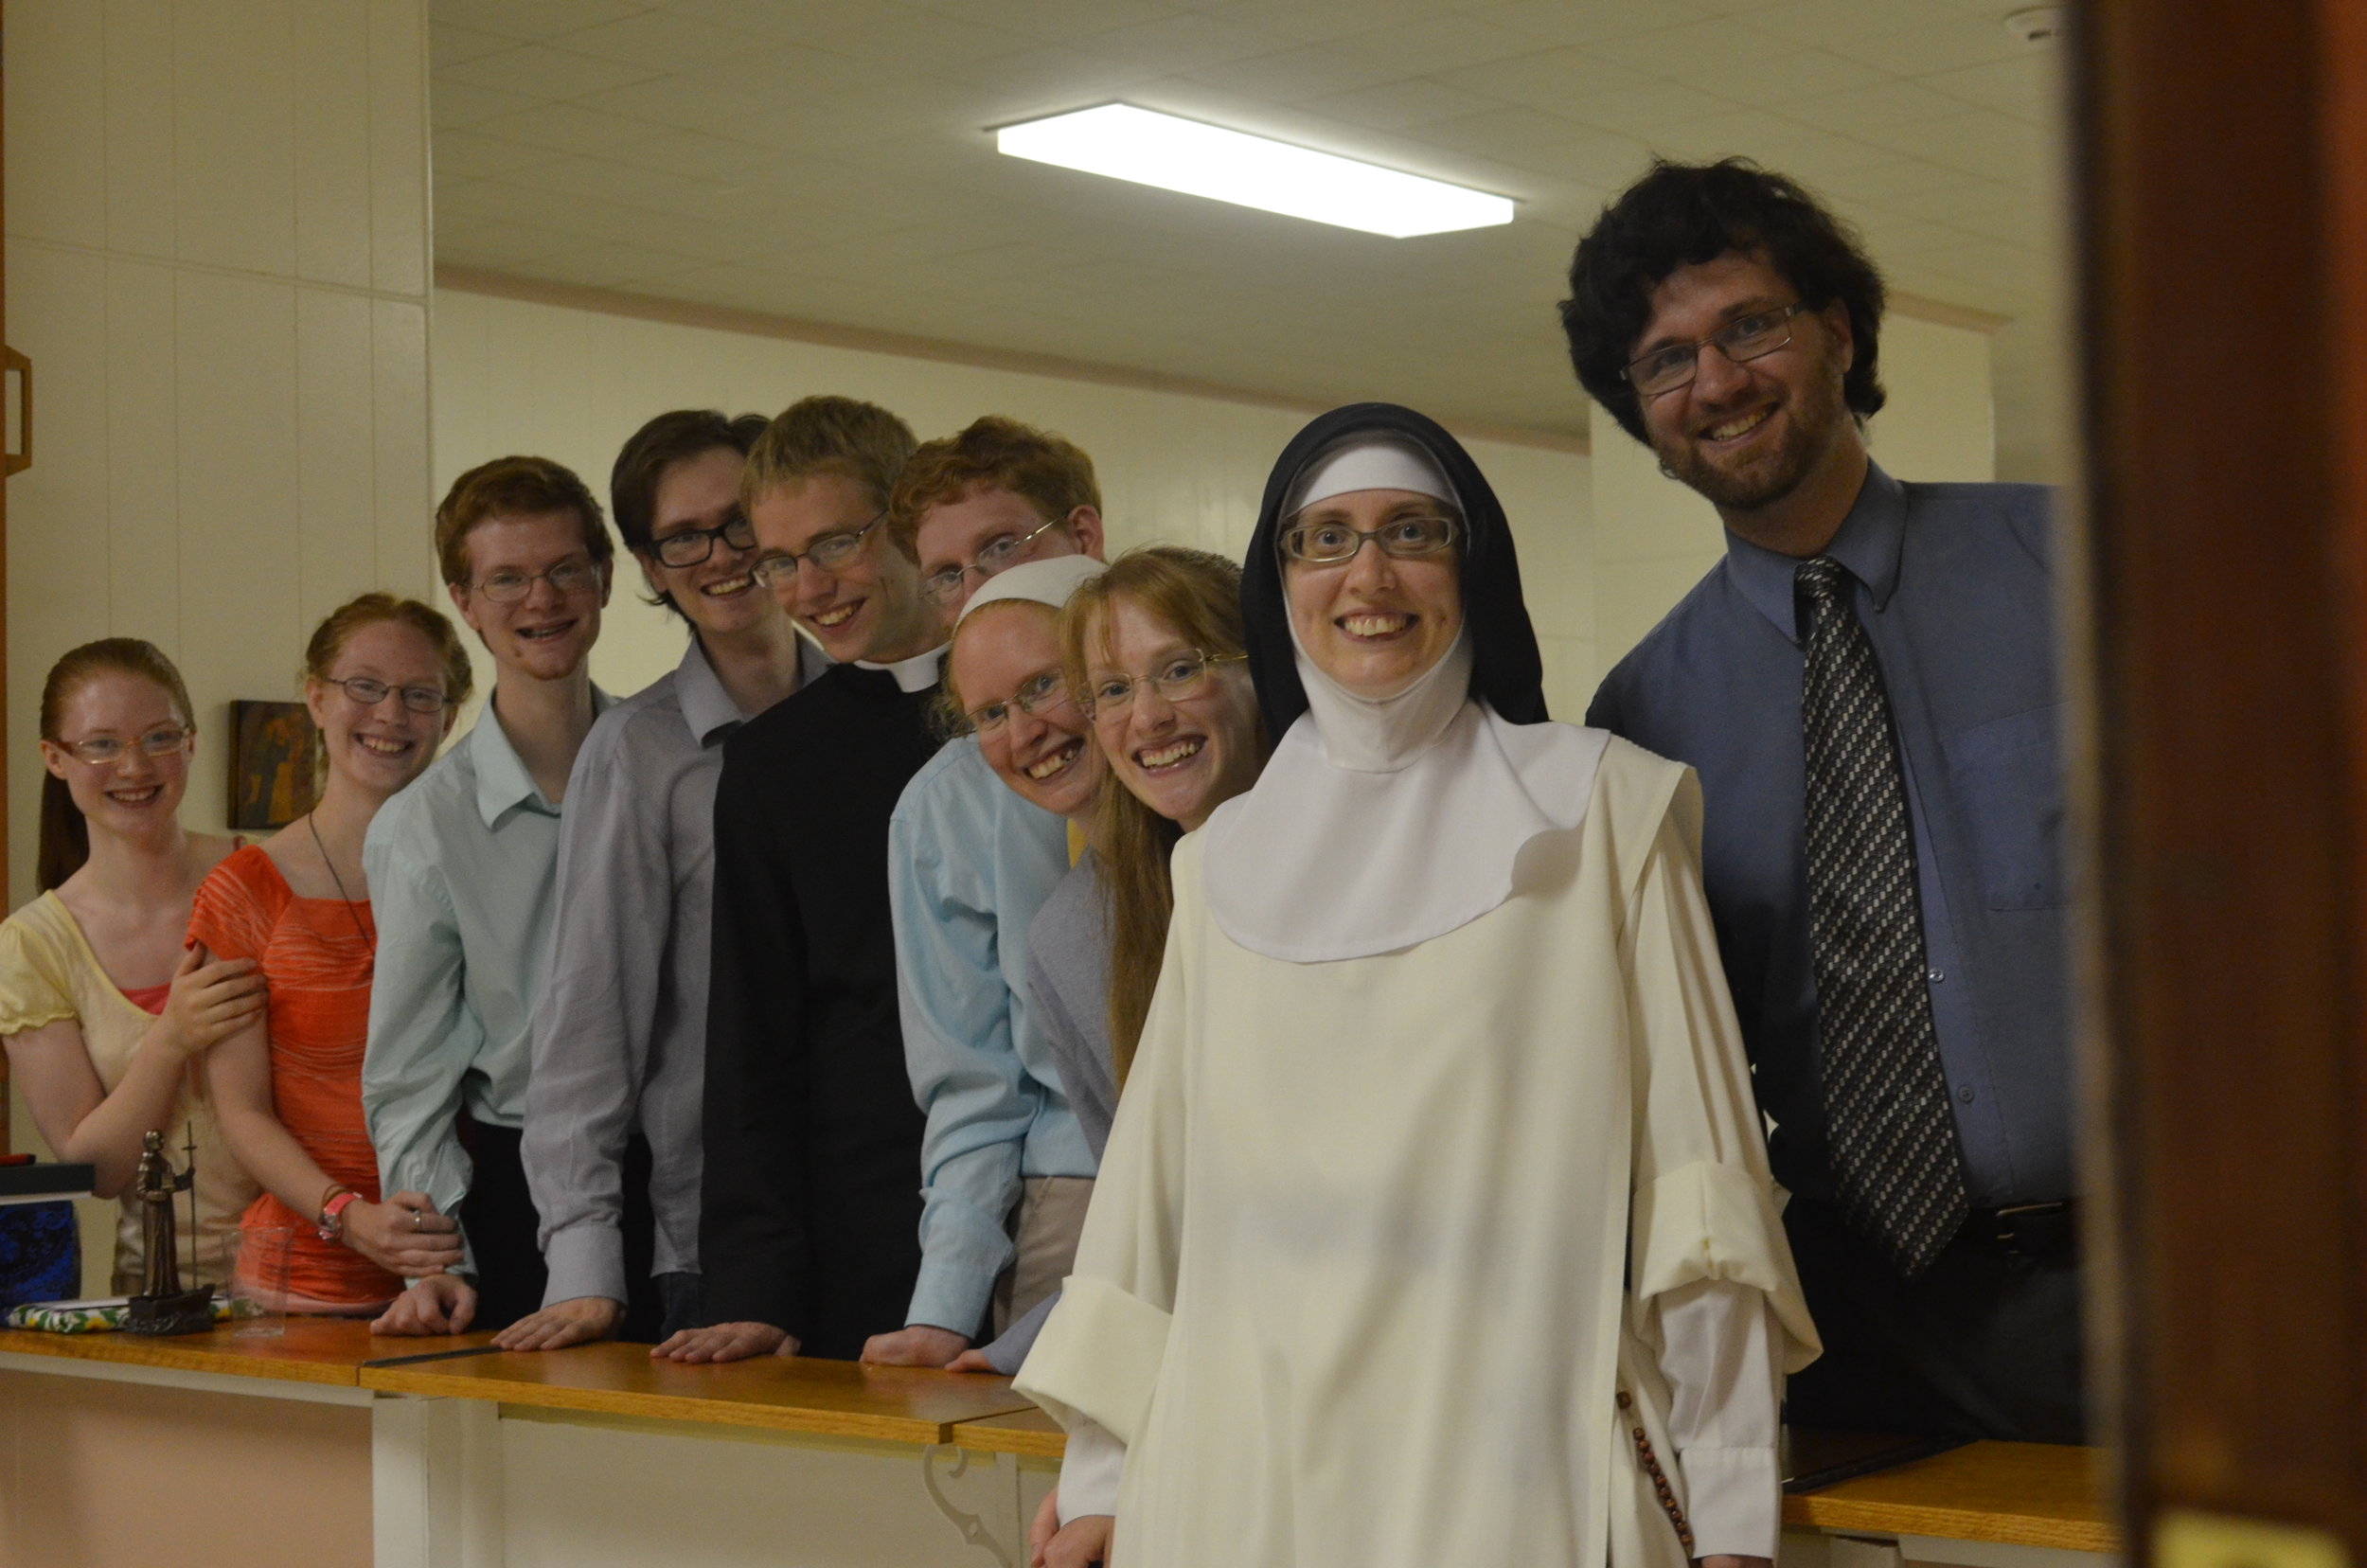 Sr. Maria Johanna with all of her siblings (except for one and with the addition of a friend, Fr. Jeff)